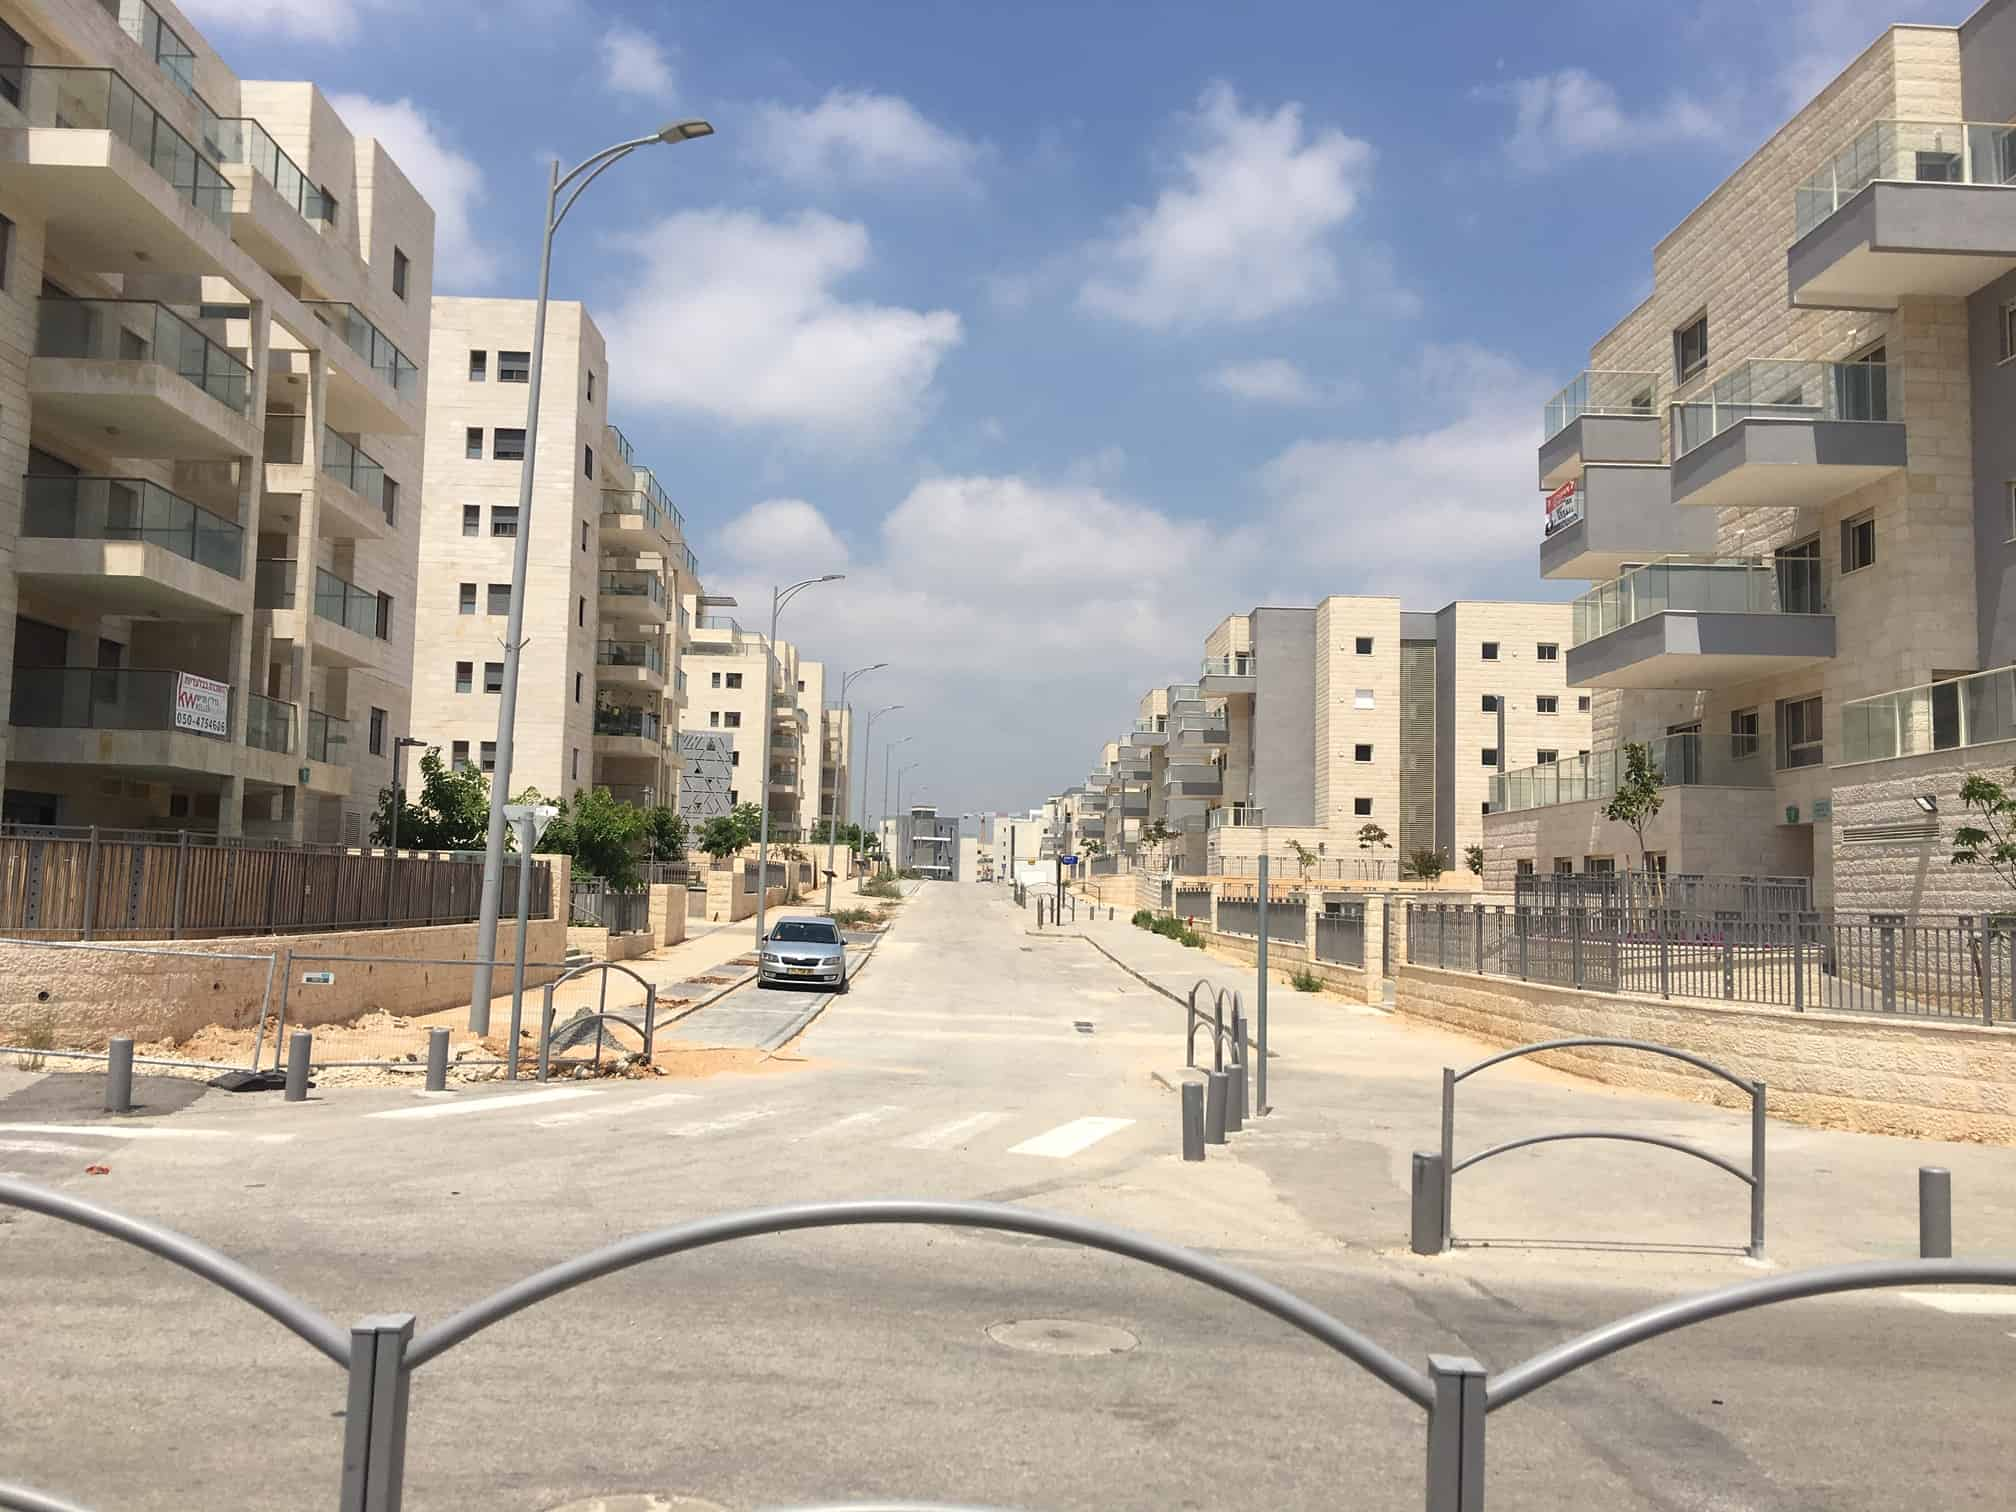 Harish was designed as an ultra-Orthodox community but it stands virtually empty, and its secular residents are stuck with the ill-designed infrastructure. (Photo: Amir Ben-David)